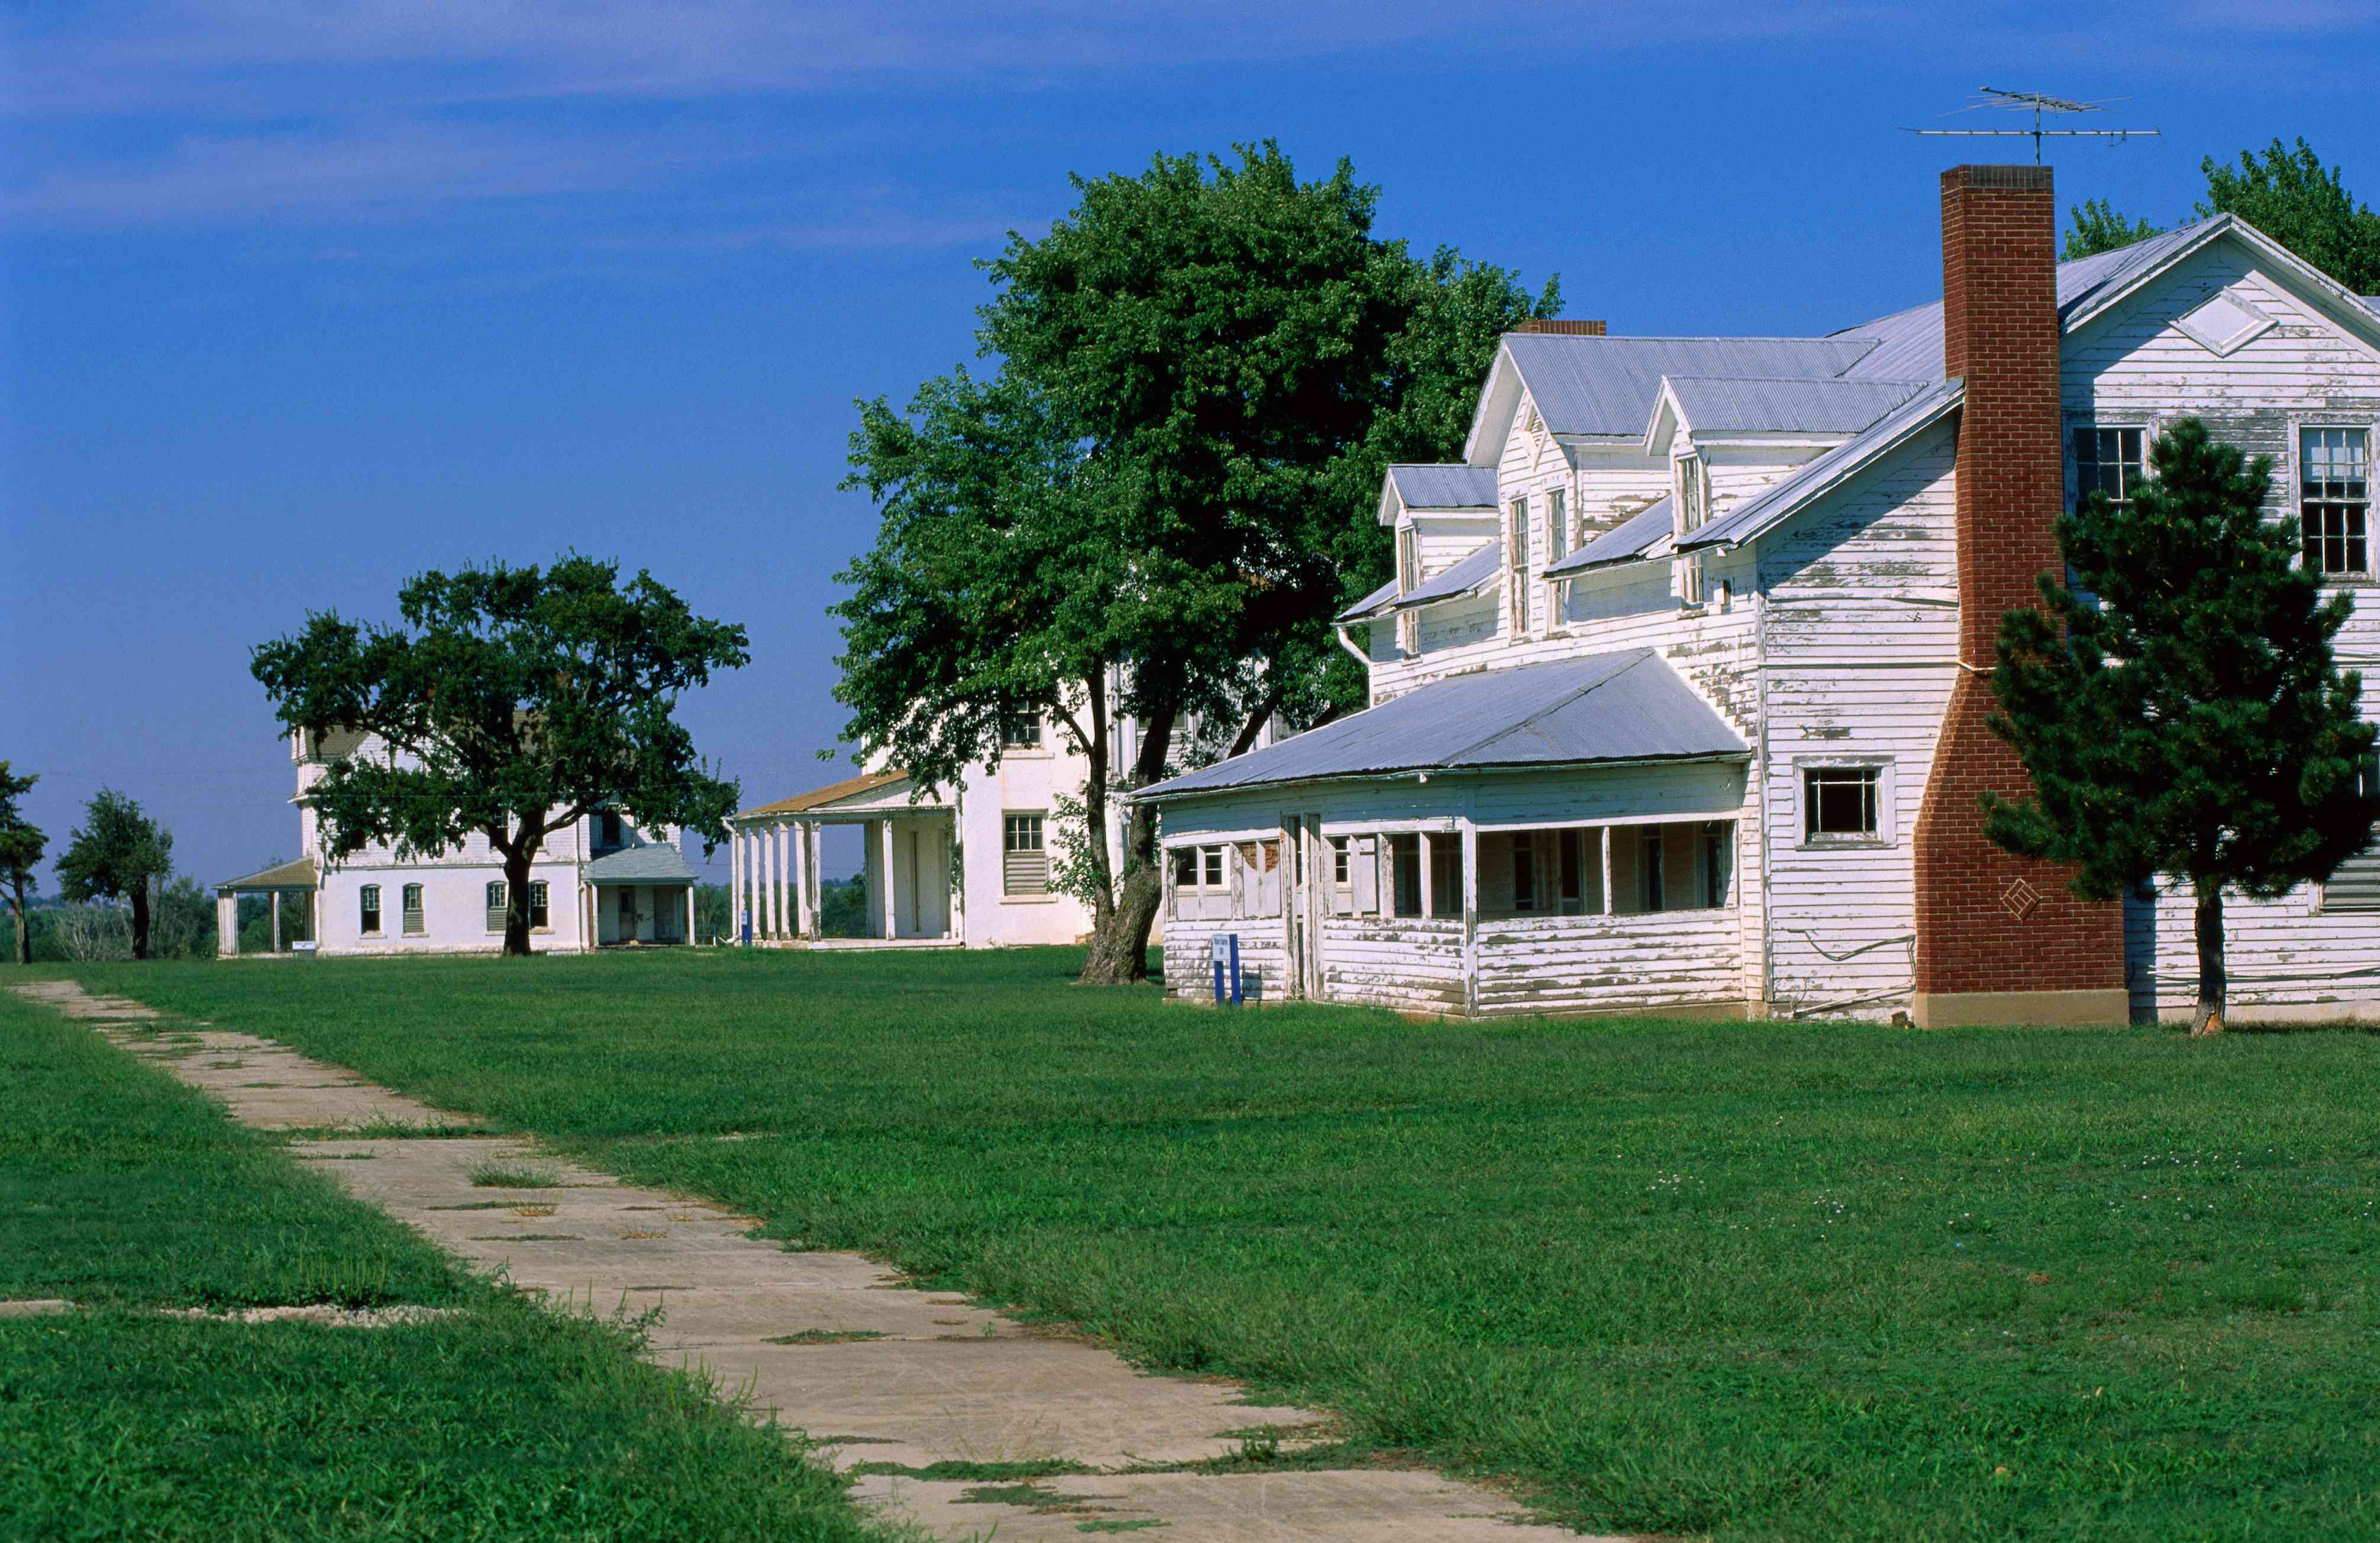 Historic white wooden buildings with green lawns and a small, cracked sidewalk